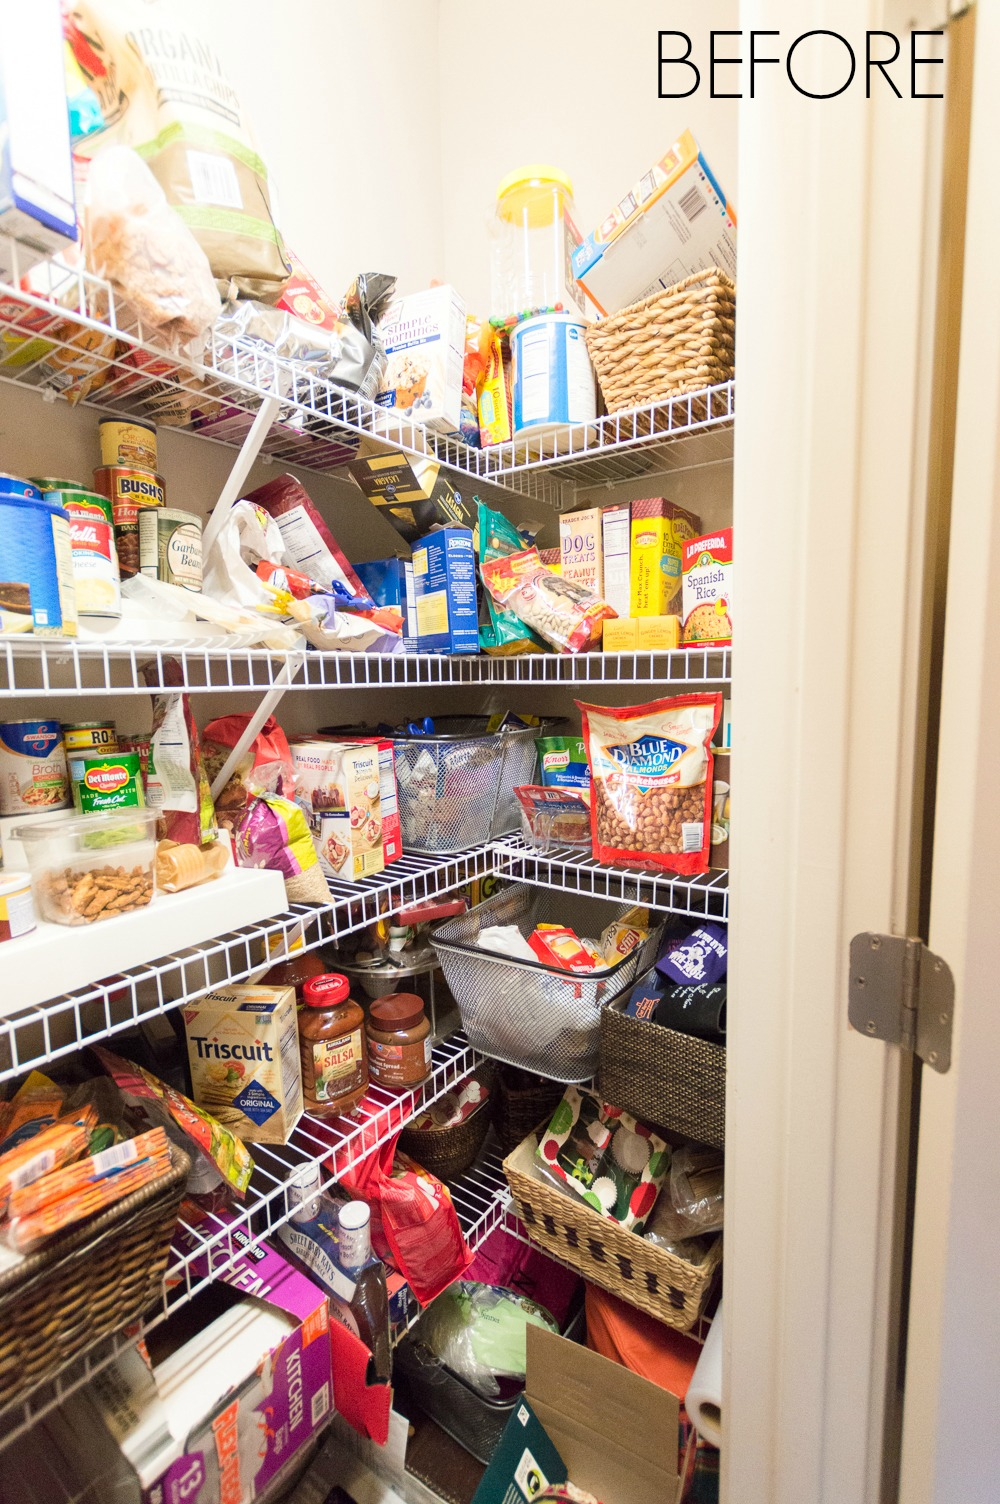 Before of a small cluttered pantry